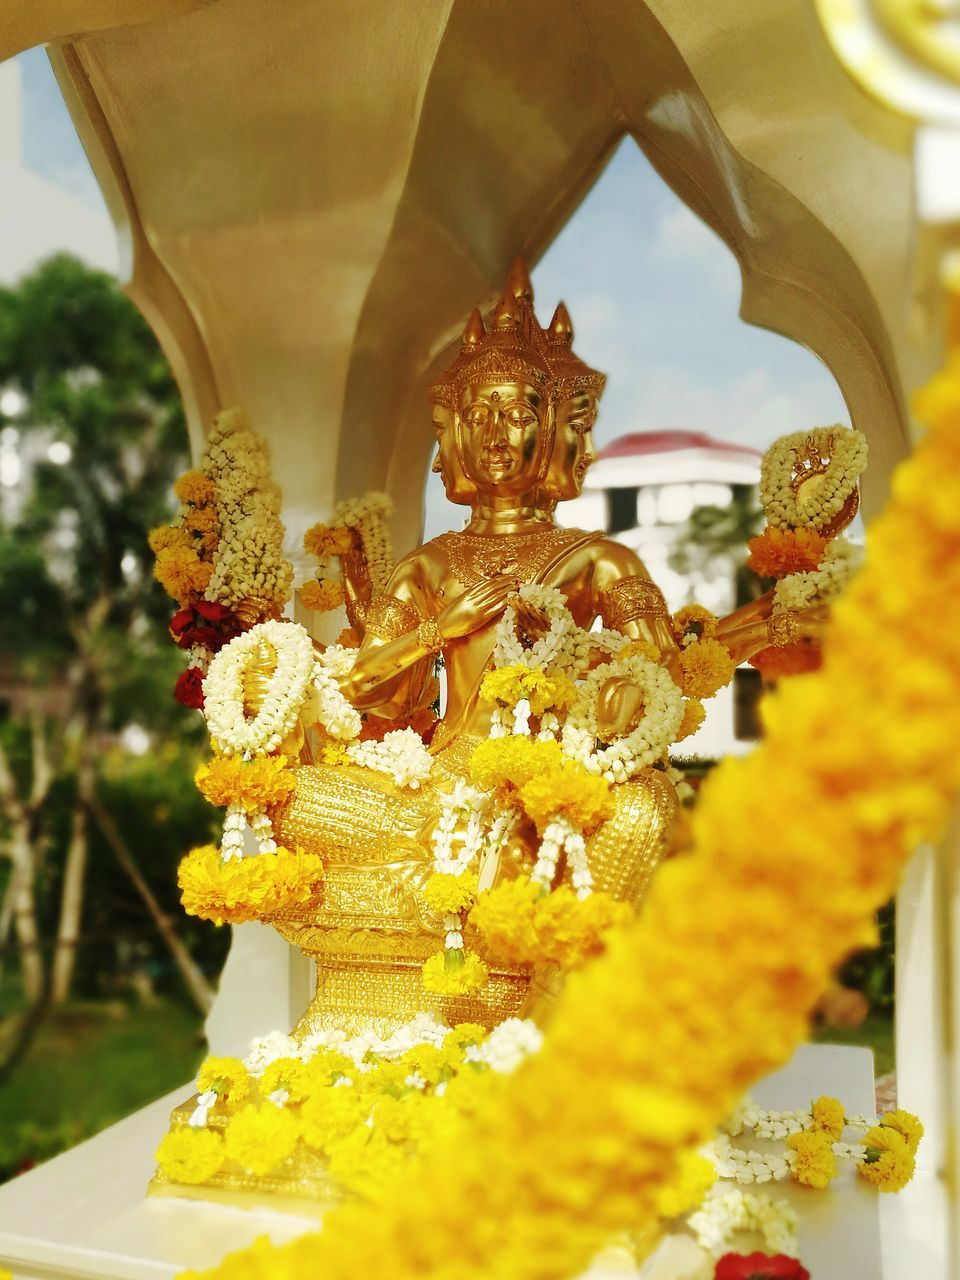 religion, statue, spirituality, art and craft, sculpture, male likeness, human representation, place of worship, flower, gold colored, indoors, no people, idol, day, close-up